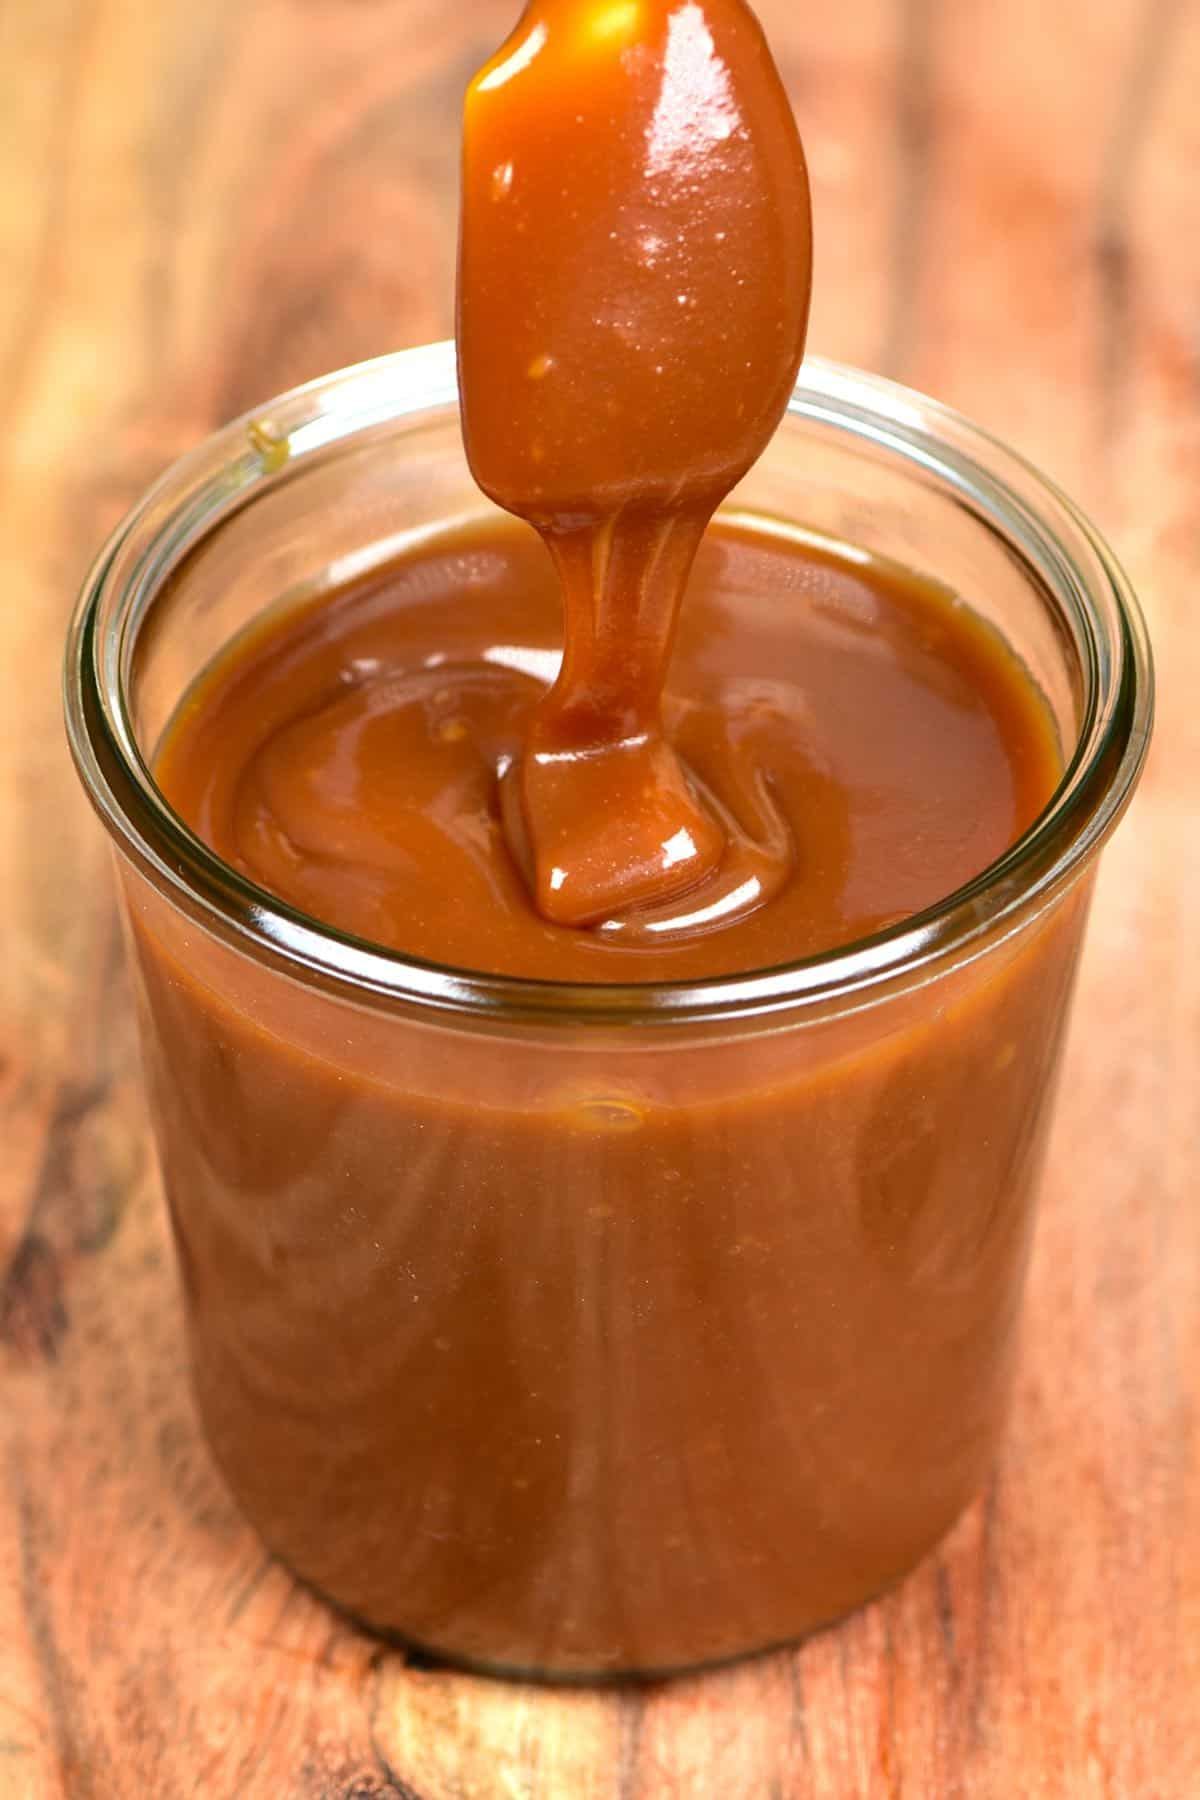 Dipping a spoon into a jar with homemade caramel